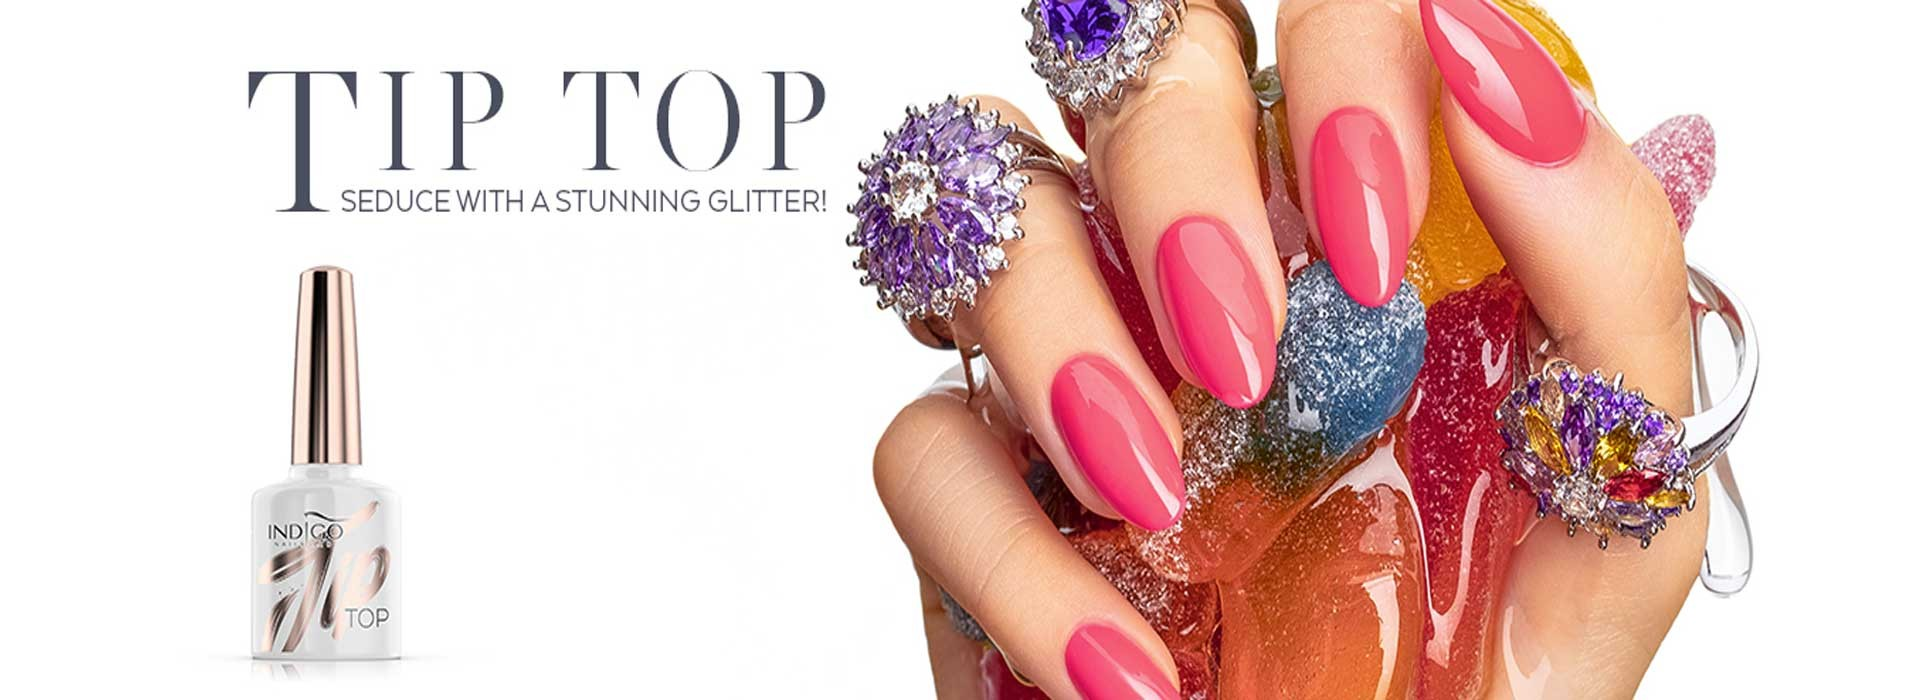 Tip top top finition gel polish